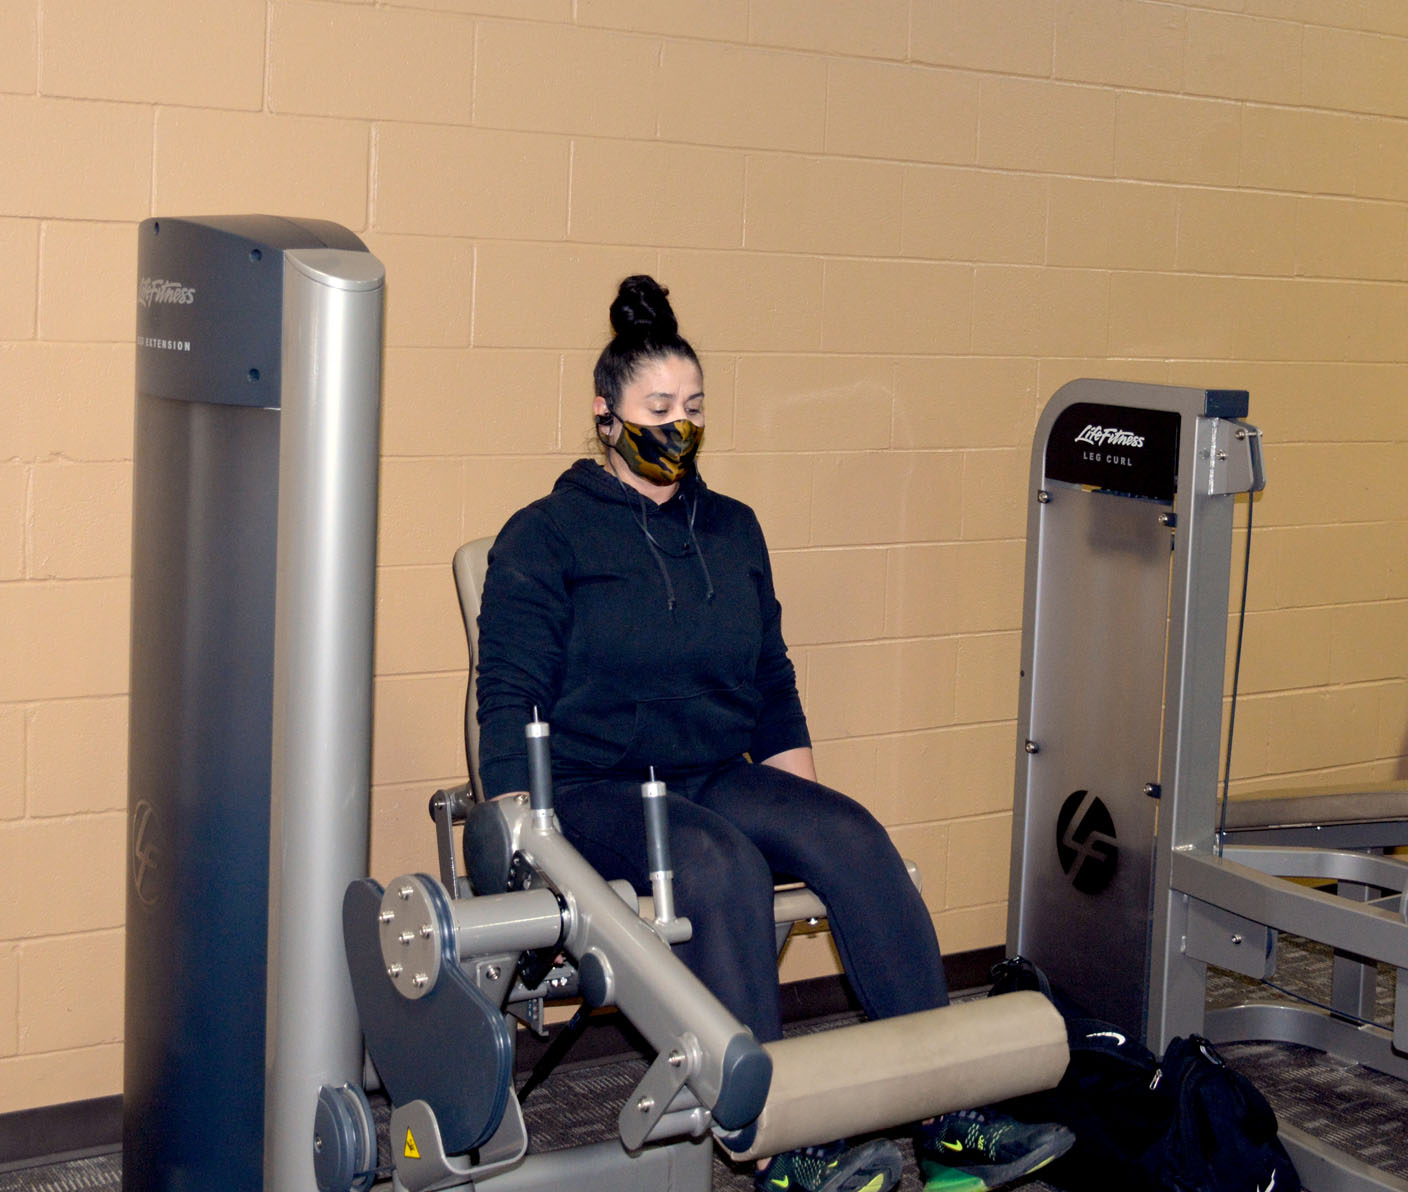 Gyms Reopen Cautiously Following Guidelines